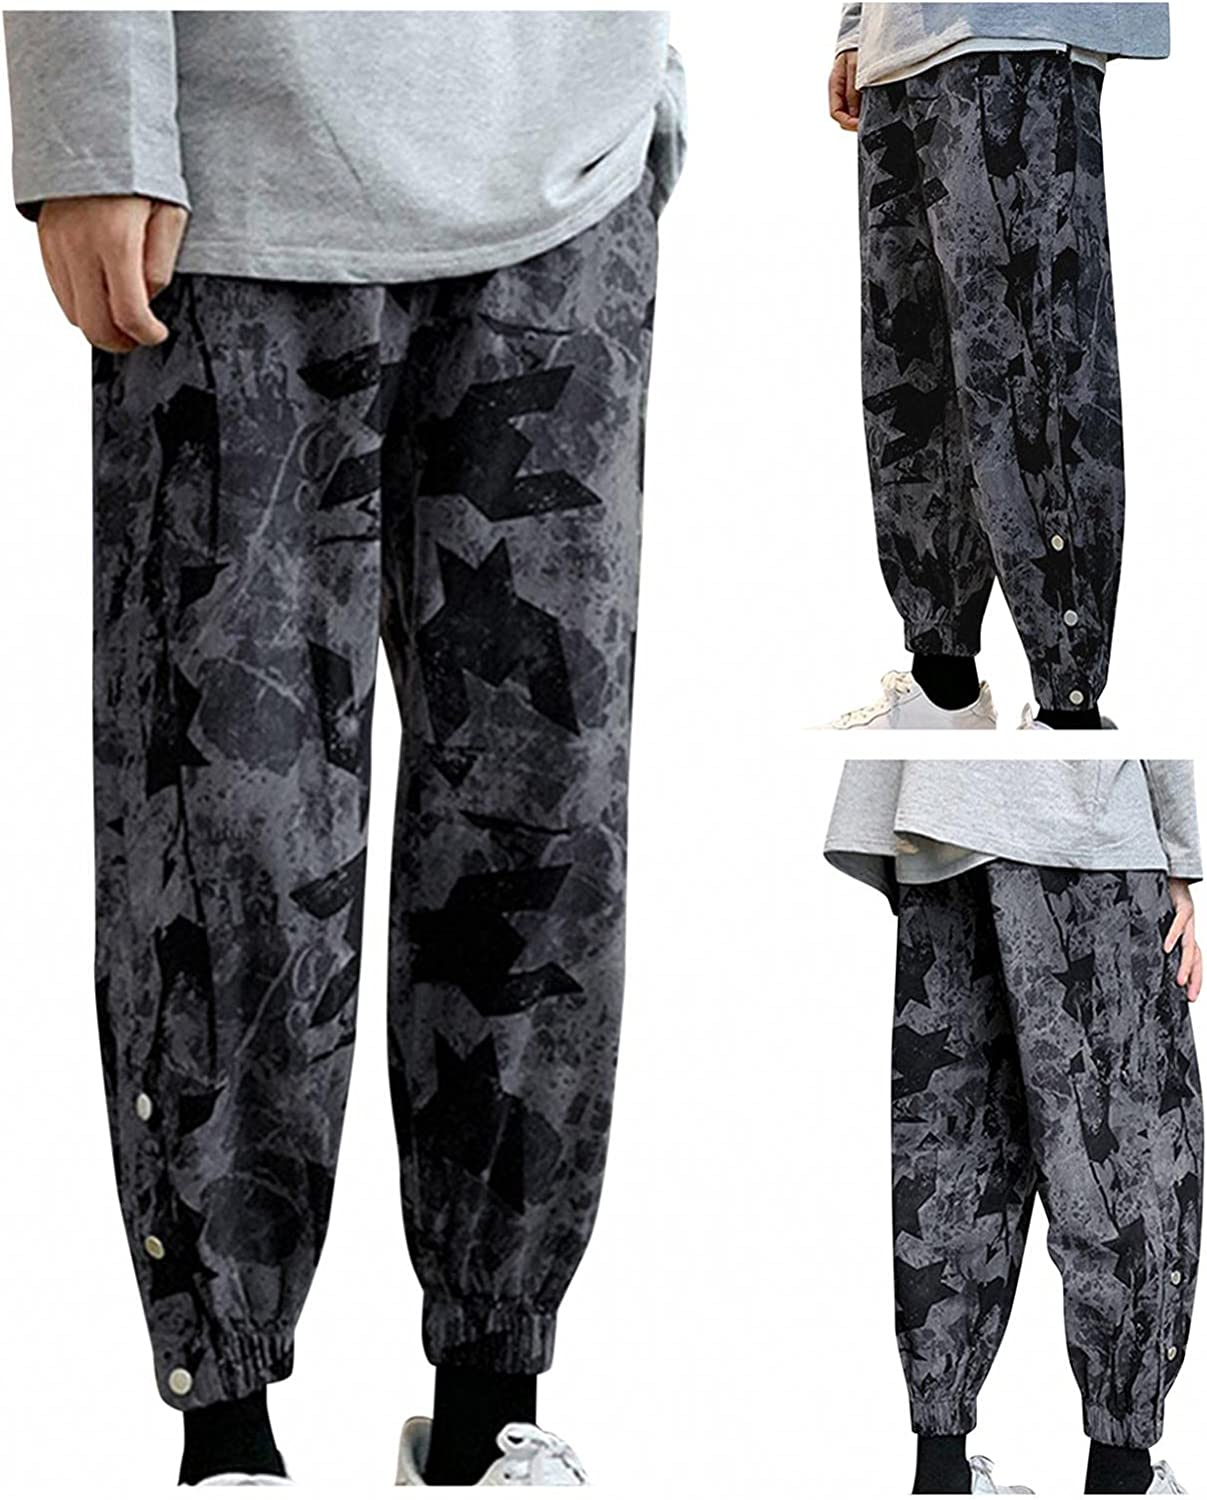 Men's Loose Lightweight Yoga Pants Slim Trendy Camouflage Harem Pants Casual Novelty Printed Hippie Trousers